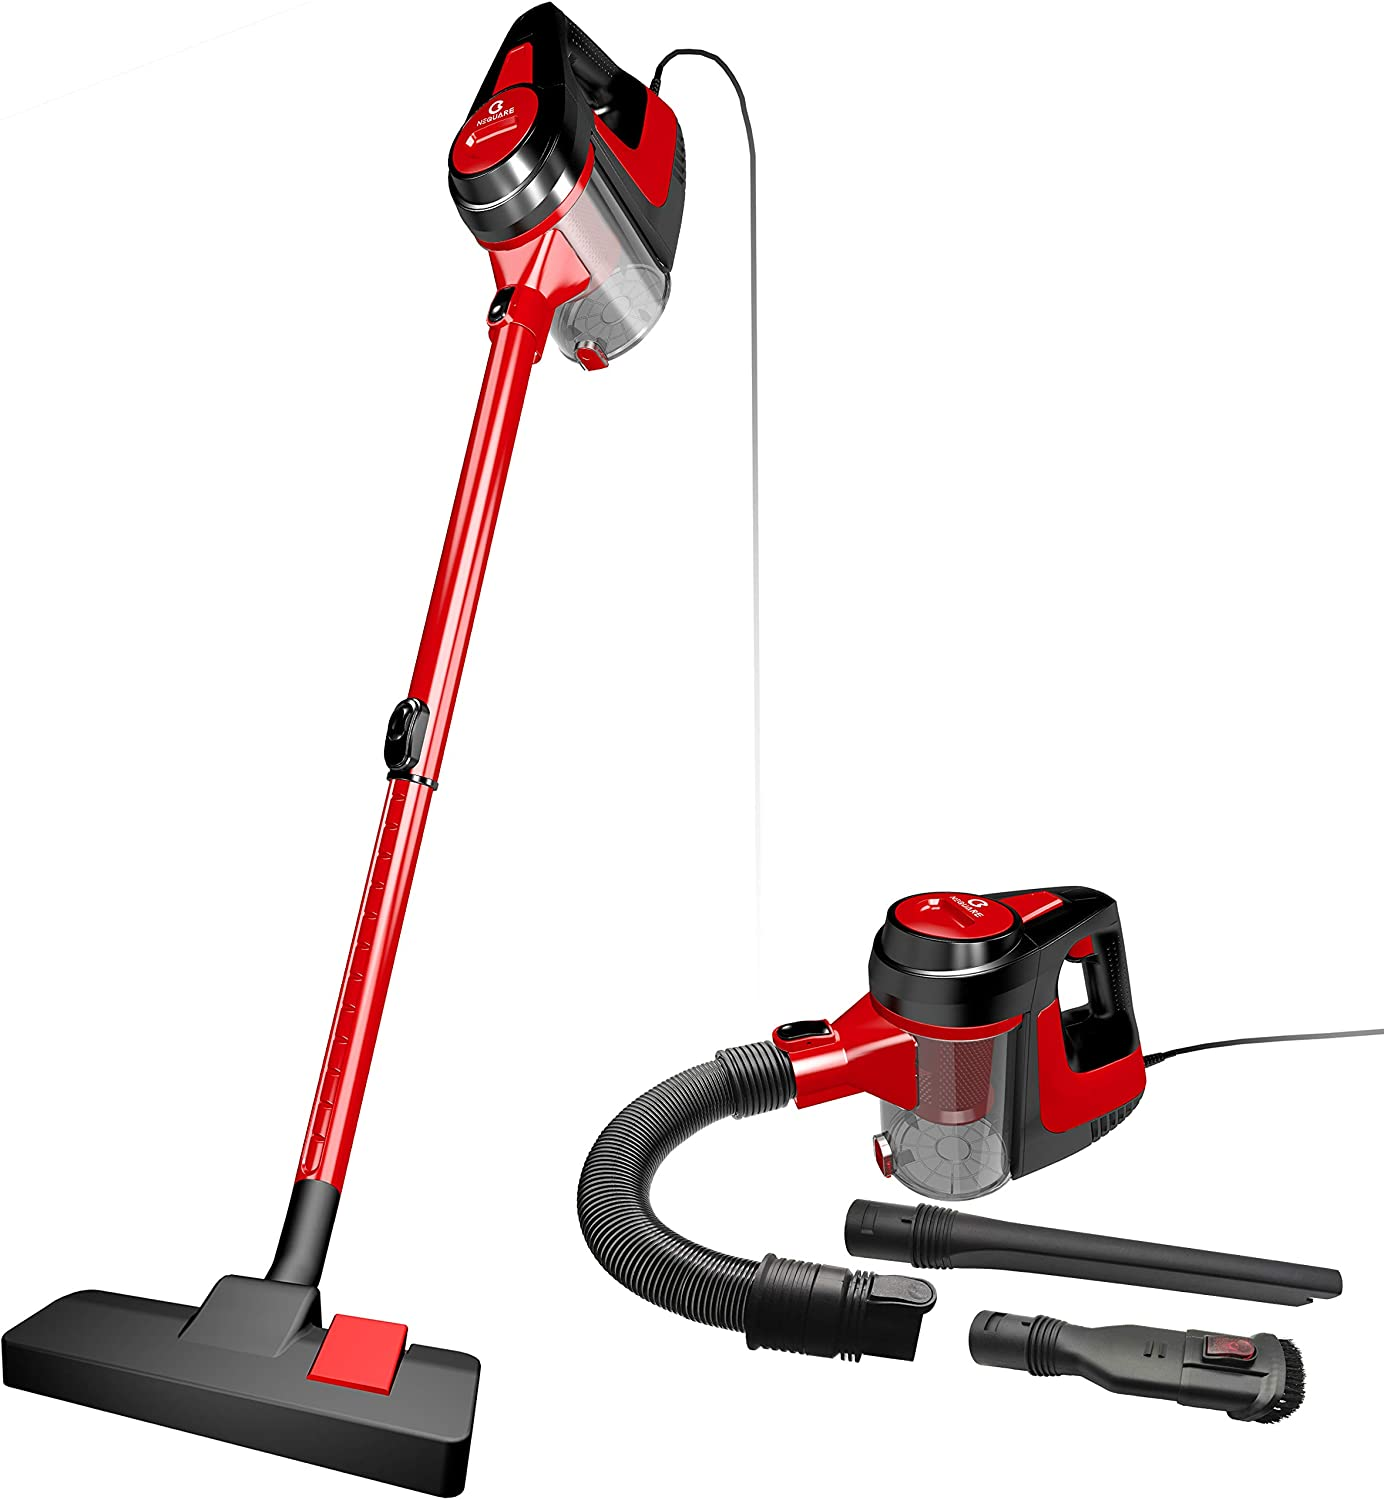 NEQUARE Vacuum Cleaner, 5 in 1 Stick Vacuum Corded Vacuum 600W 16KPa Powerful Suction with HEPA Filter for Hard Floor, Pet Hairs(A17B)